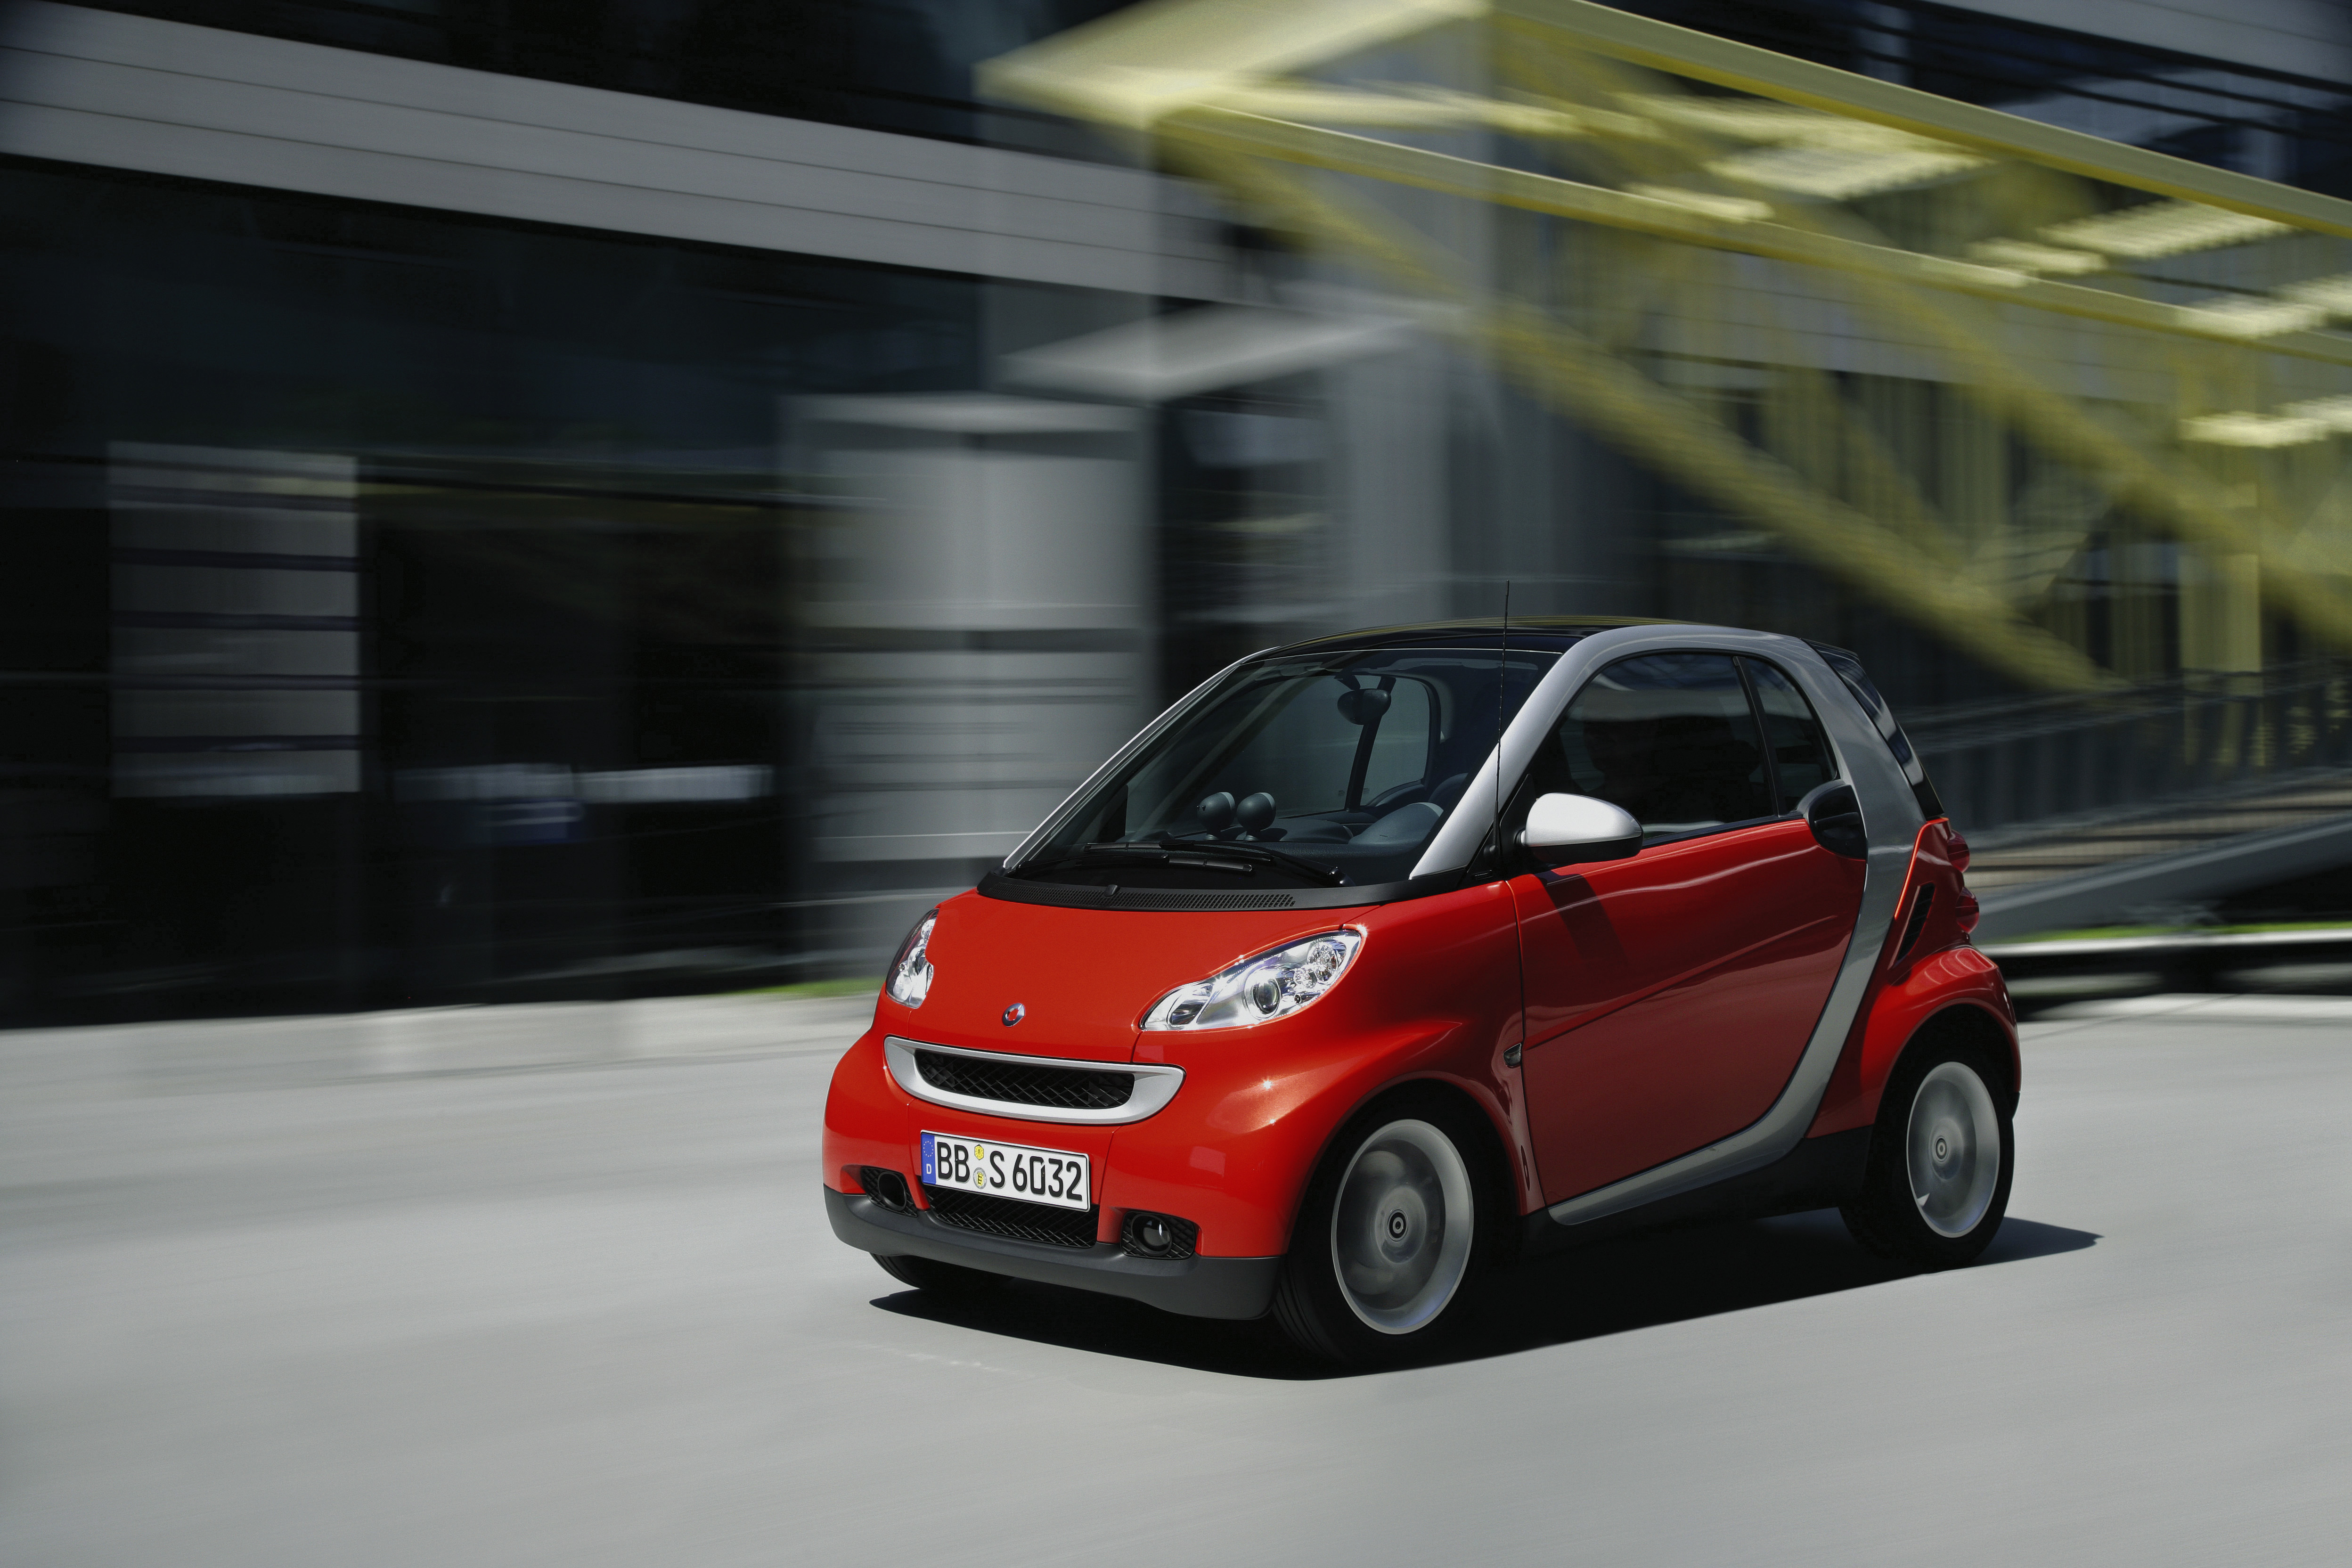 The Smart Story smart fortwo cdi